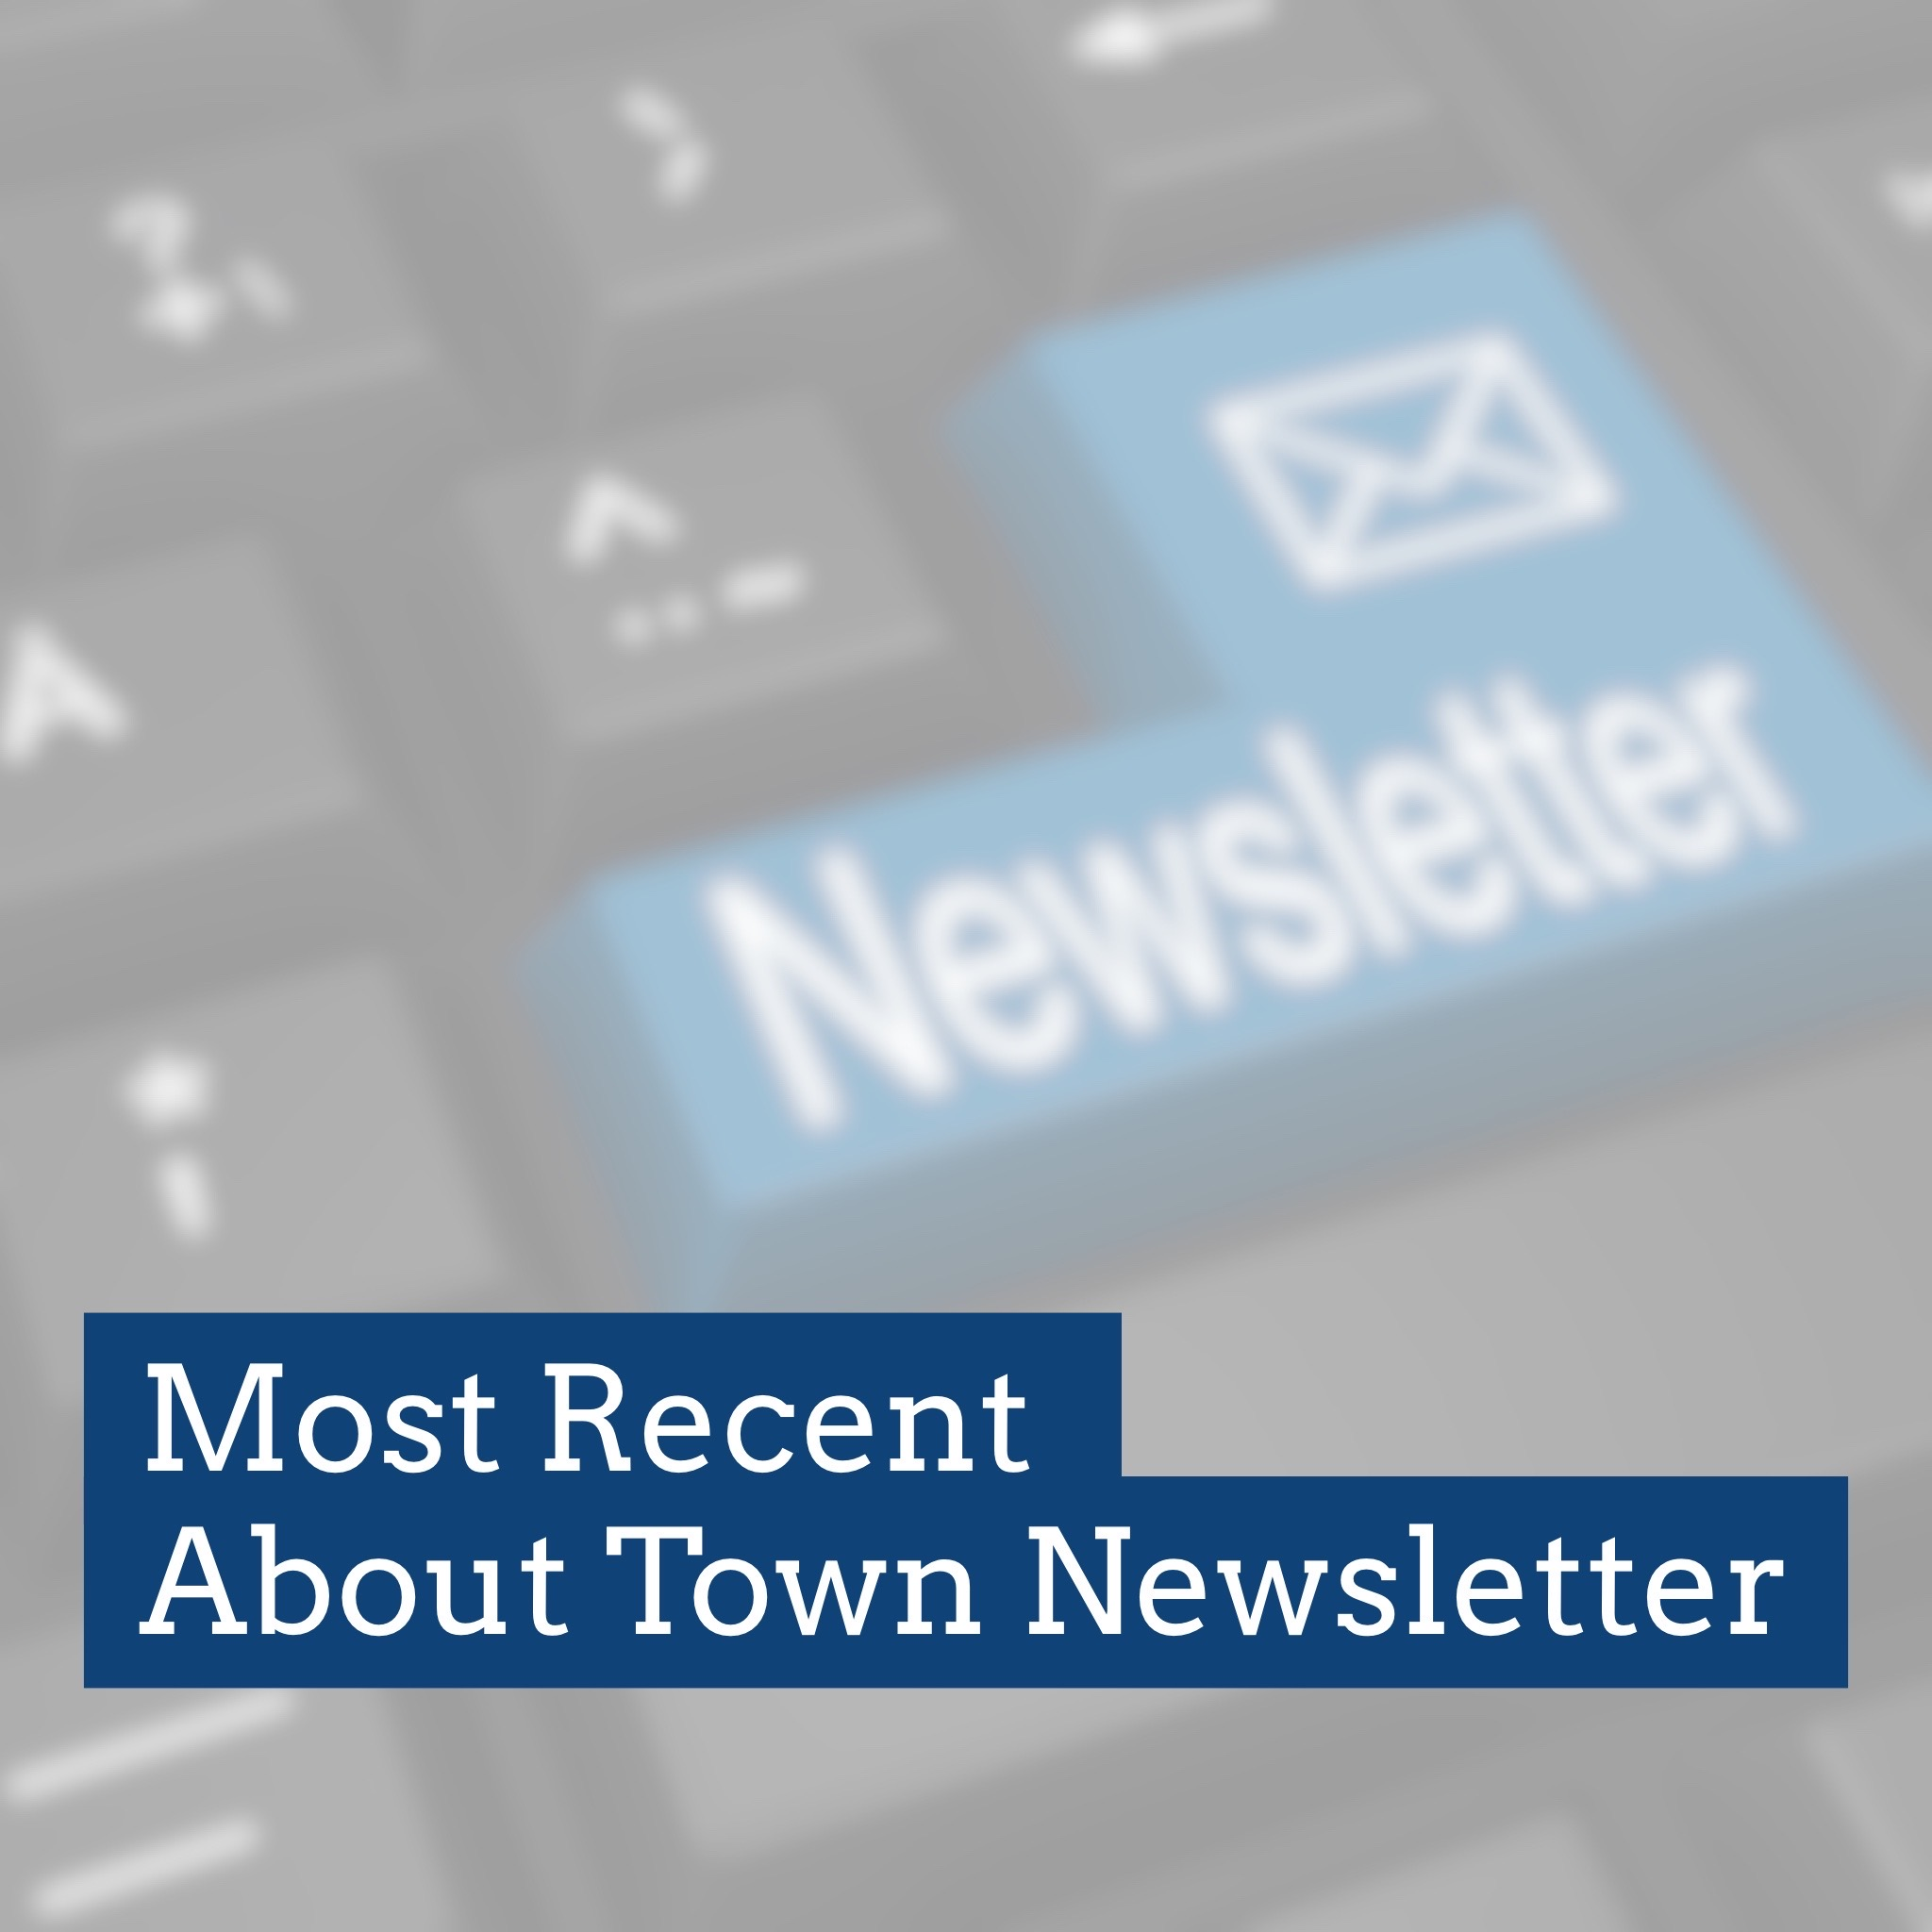 Photo of keyboard promoting Most Recent About Town Newsletter